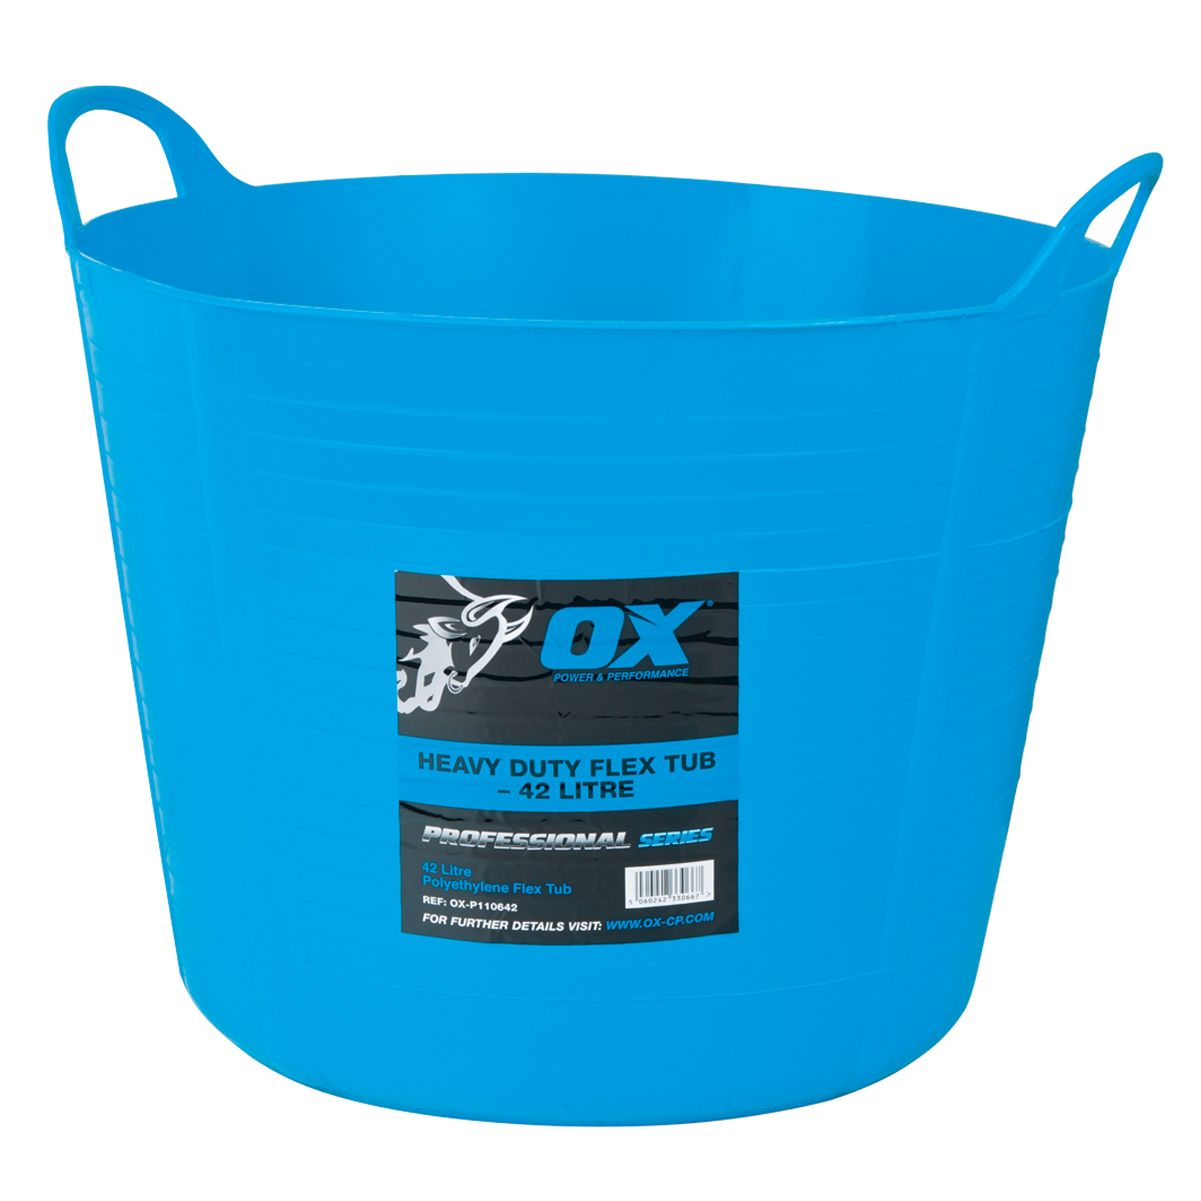 OX PRO HEAVY-DUTY FLEXI TUB 73L - OX-P110673